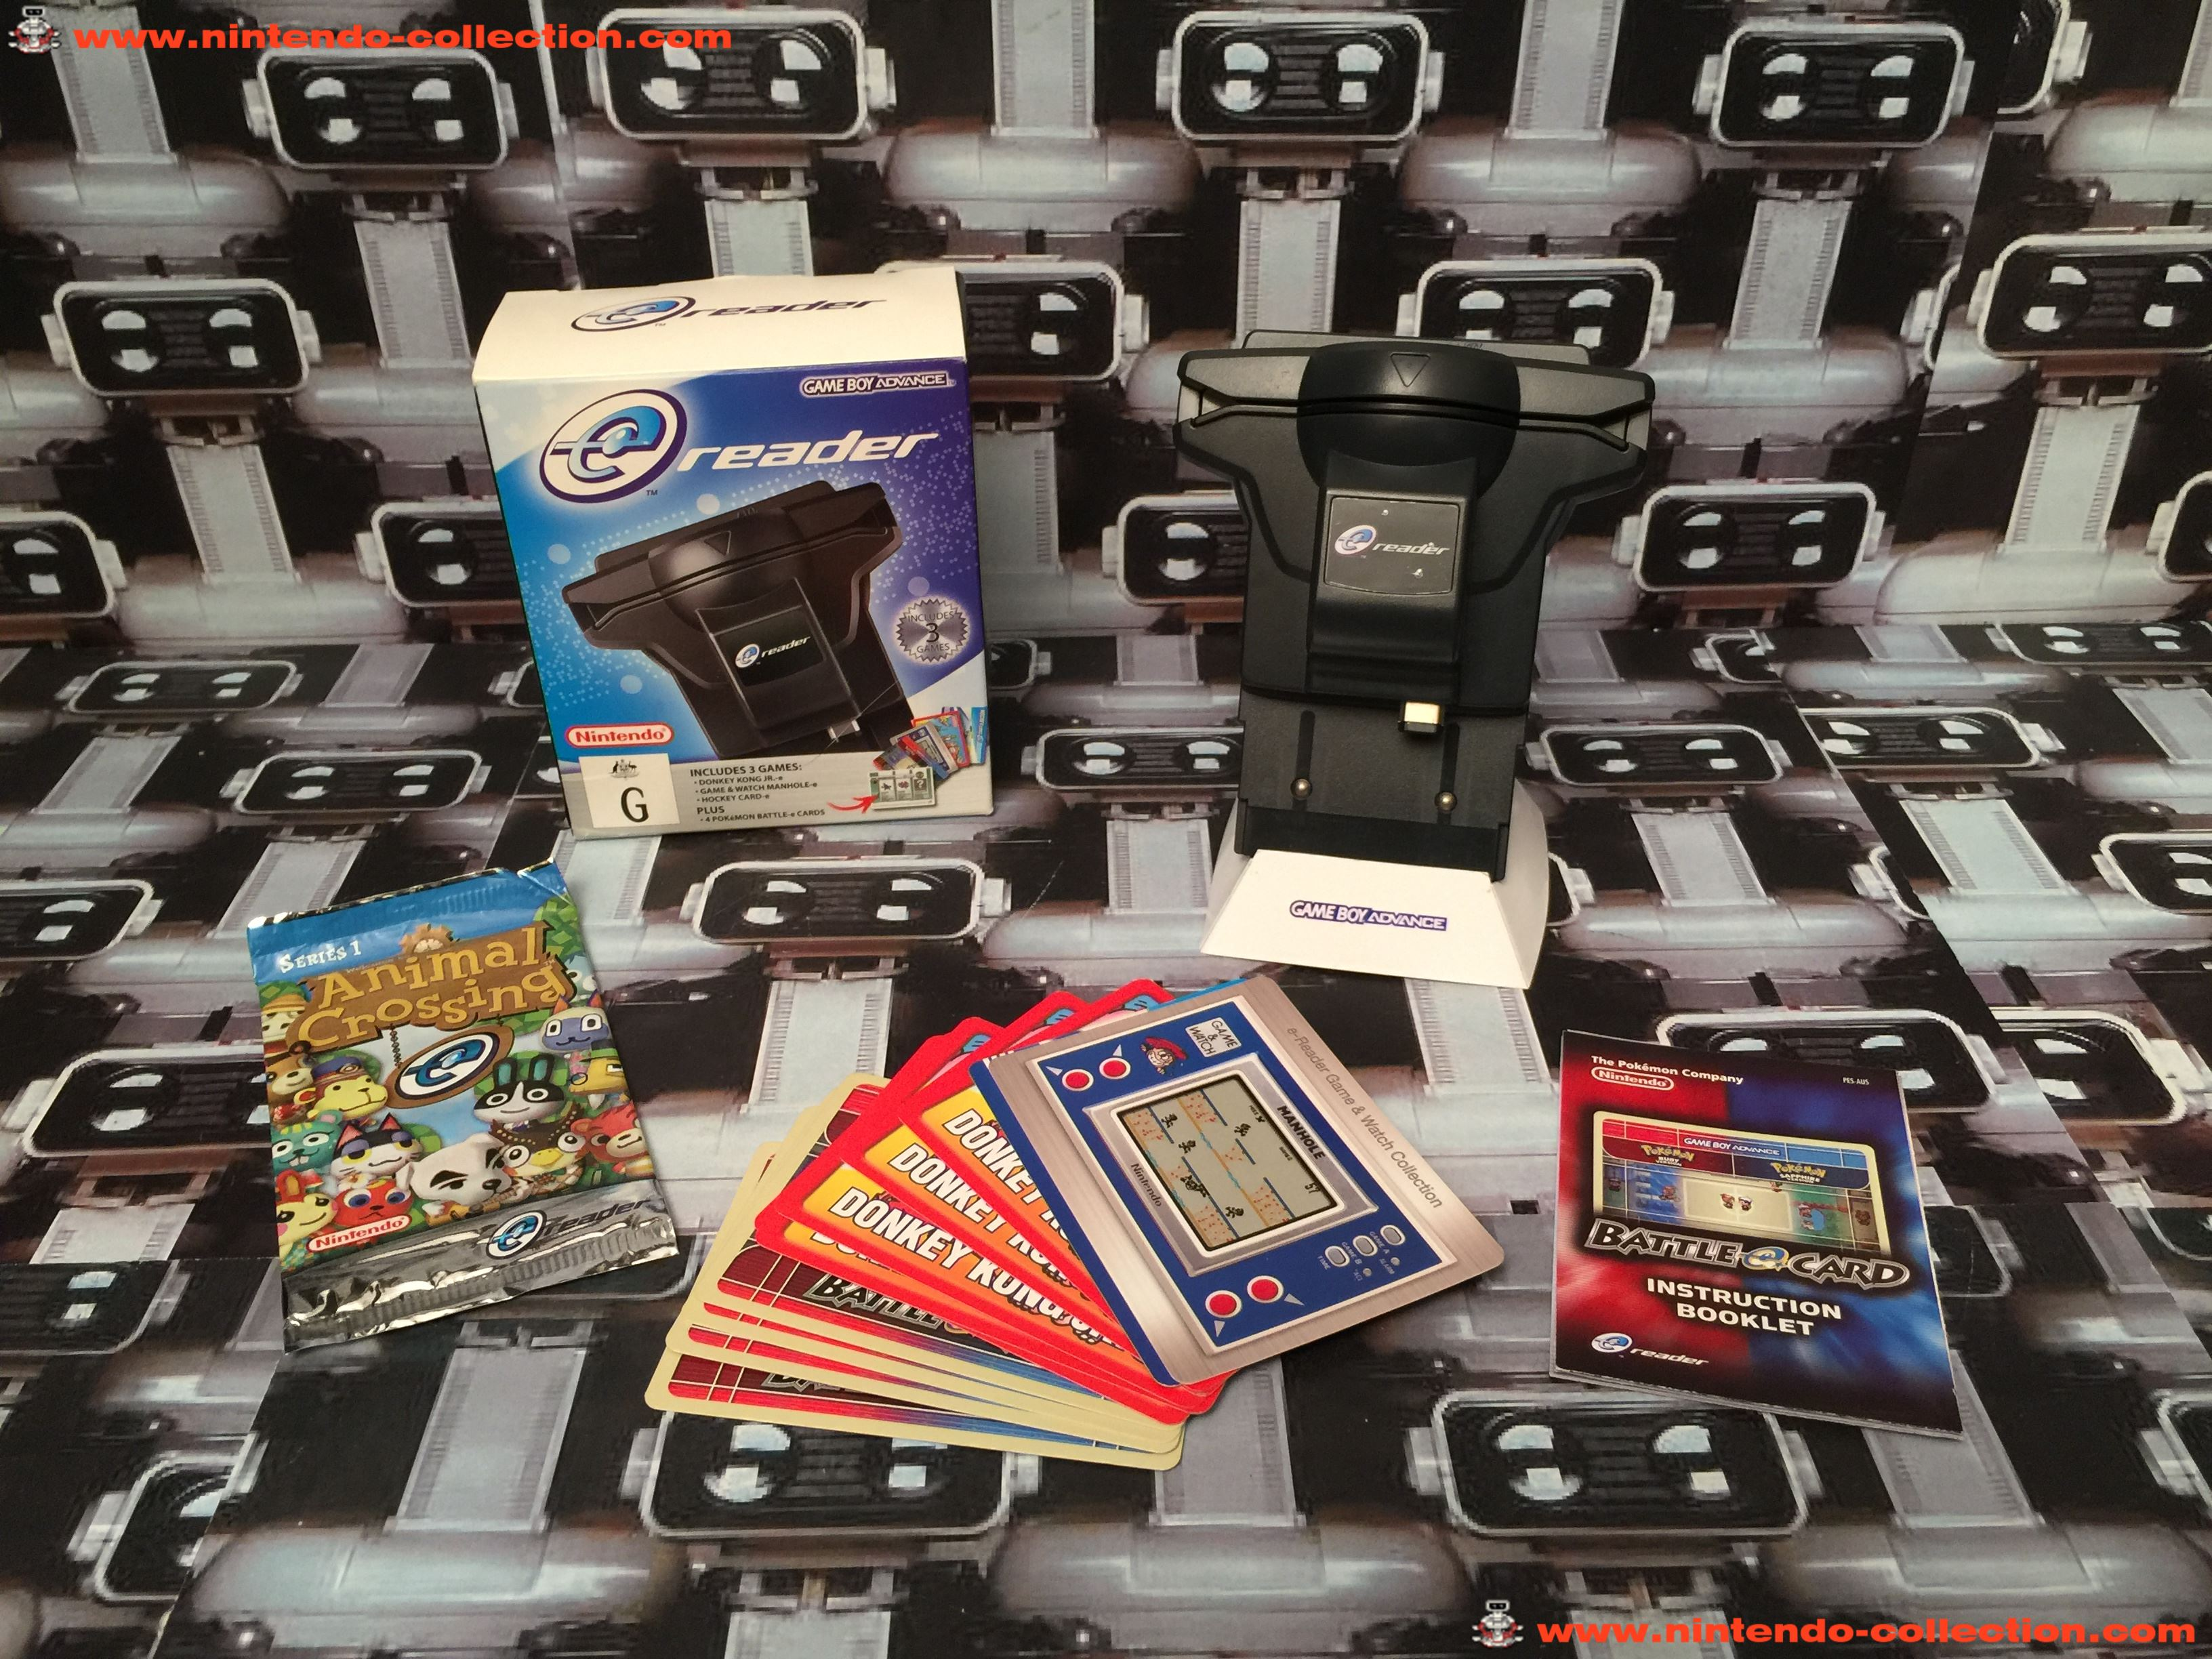 www.nintendo-collection.com - Gameboy Advance GBA Ereader E Reader Version Australian Australie Aust